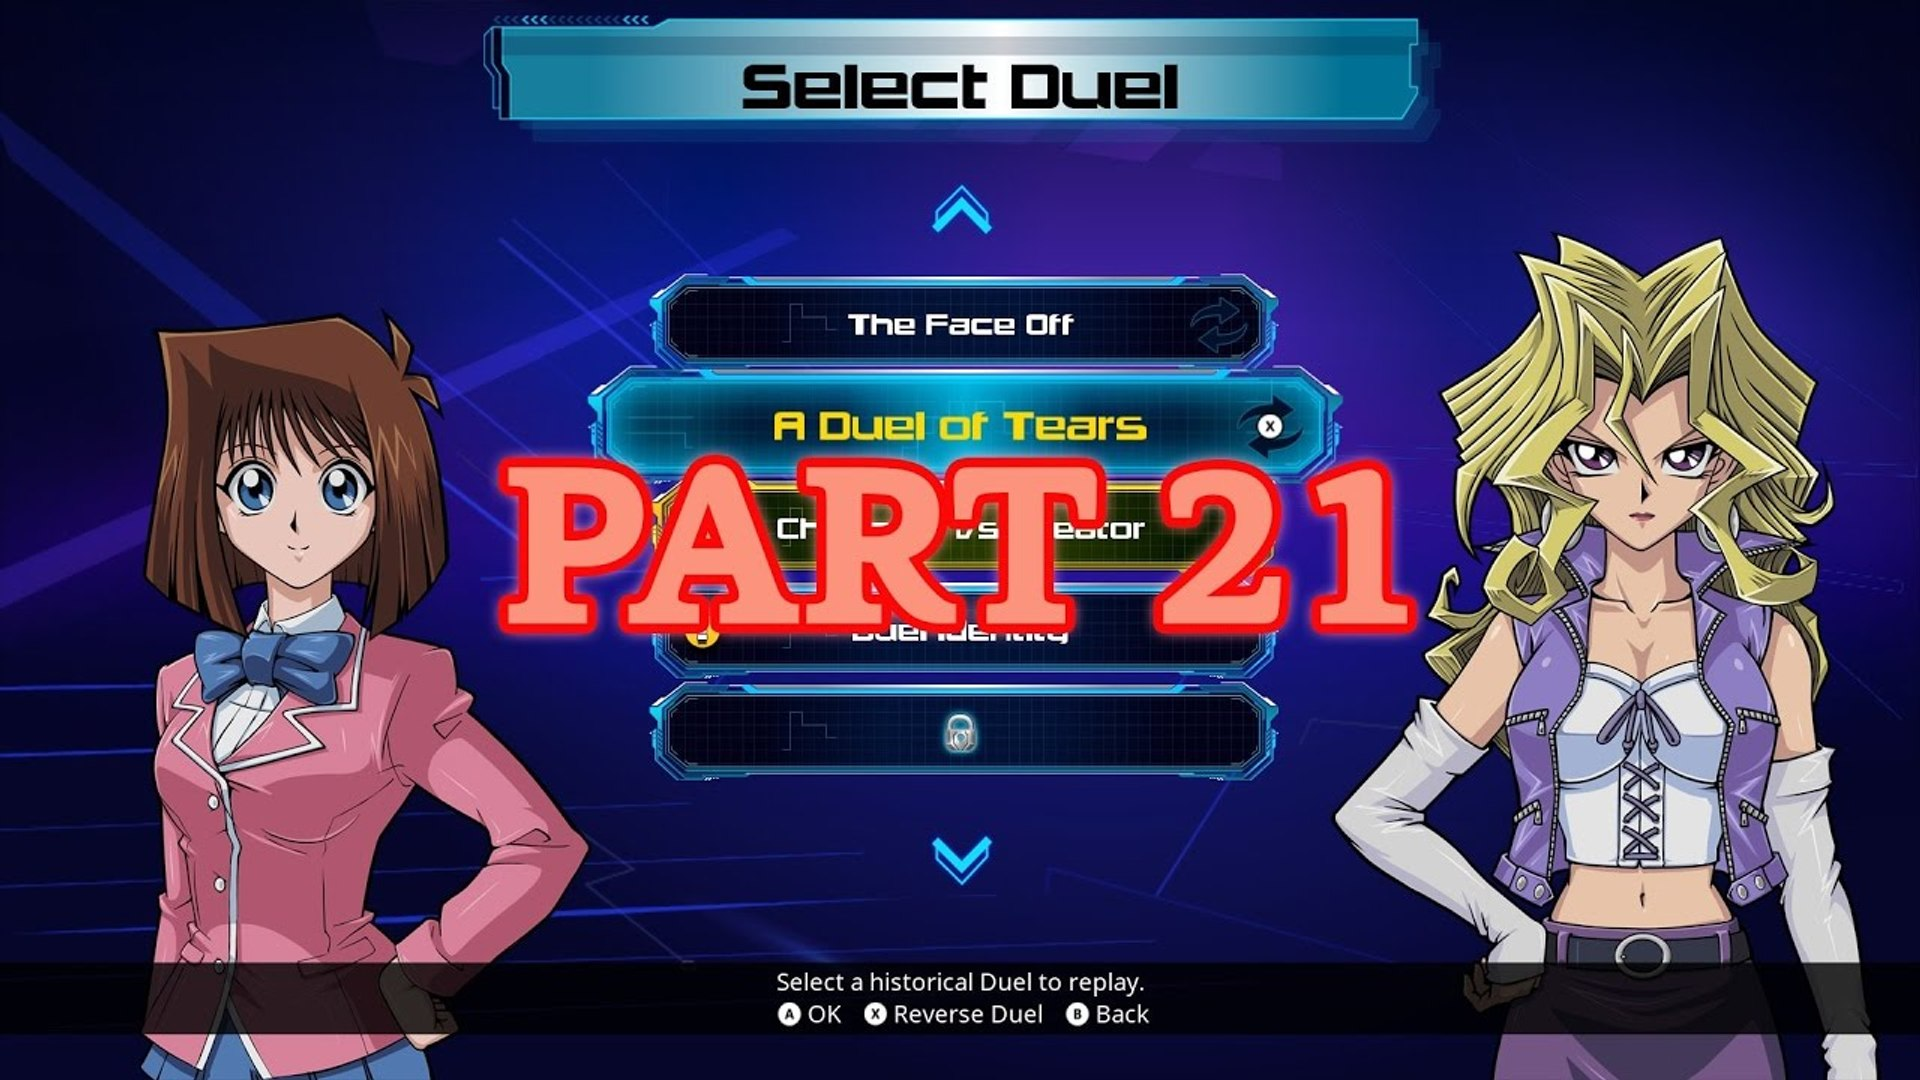 Yu-Gi-Oh! Legacy of the Duelist (PC) 100% - Original - Part 21: A Duel of Tears